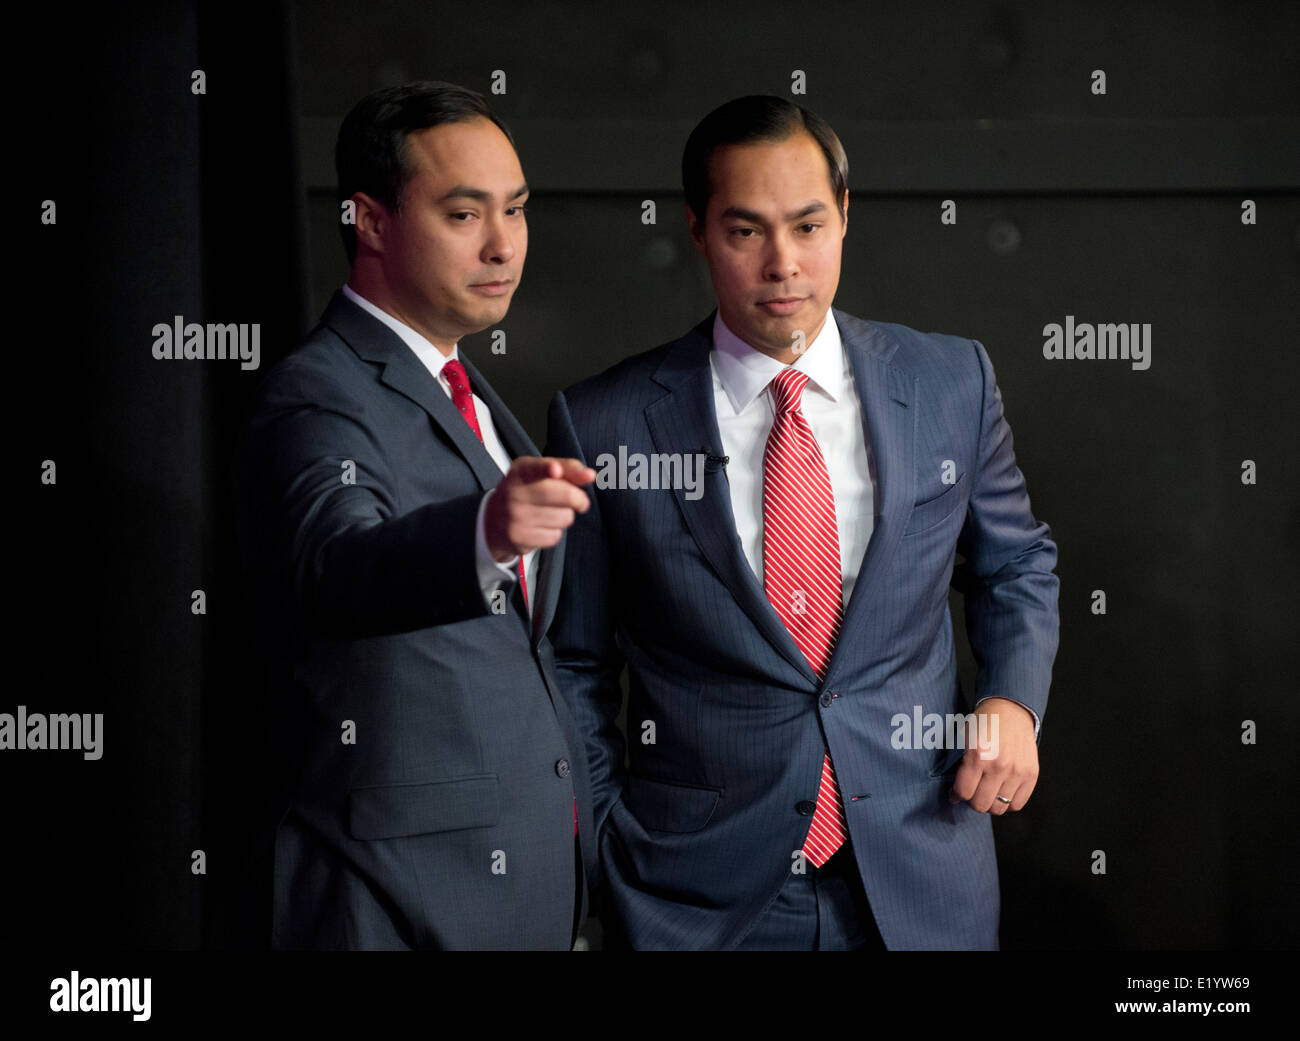 San Antonio Mayor Julian Castro, right, with his identical twin brother, U.S. Congressman Joaquin Castro Stock Photo